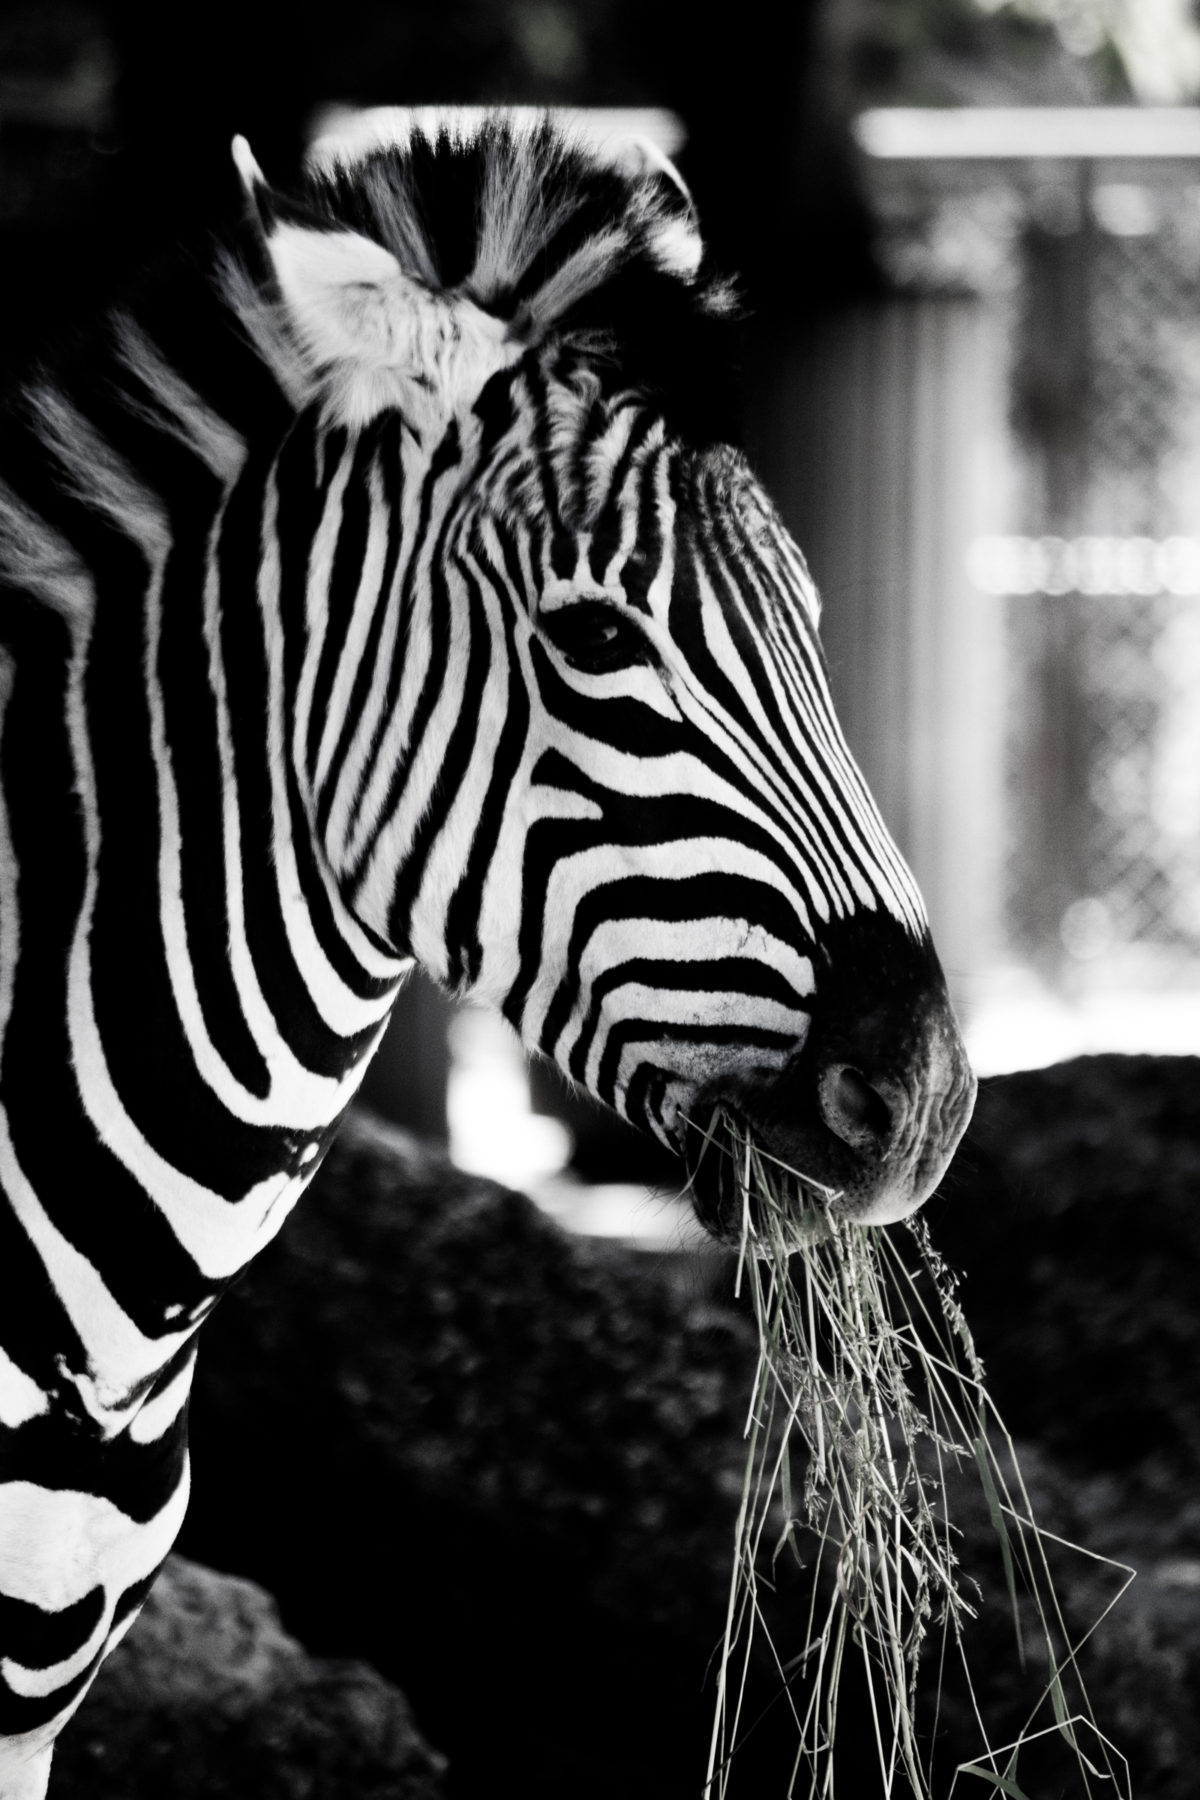 Zebra love black & white